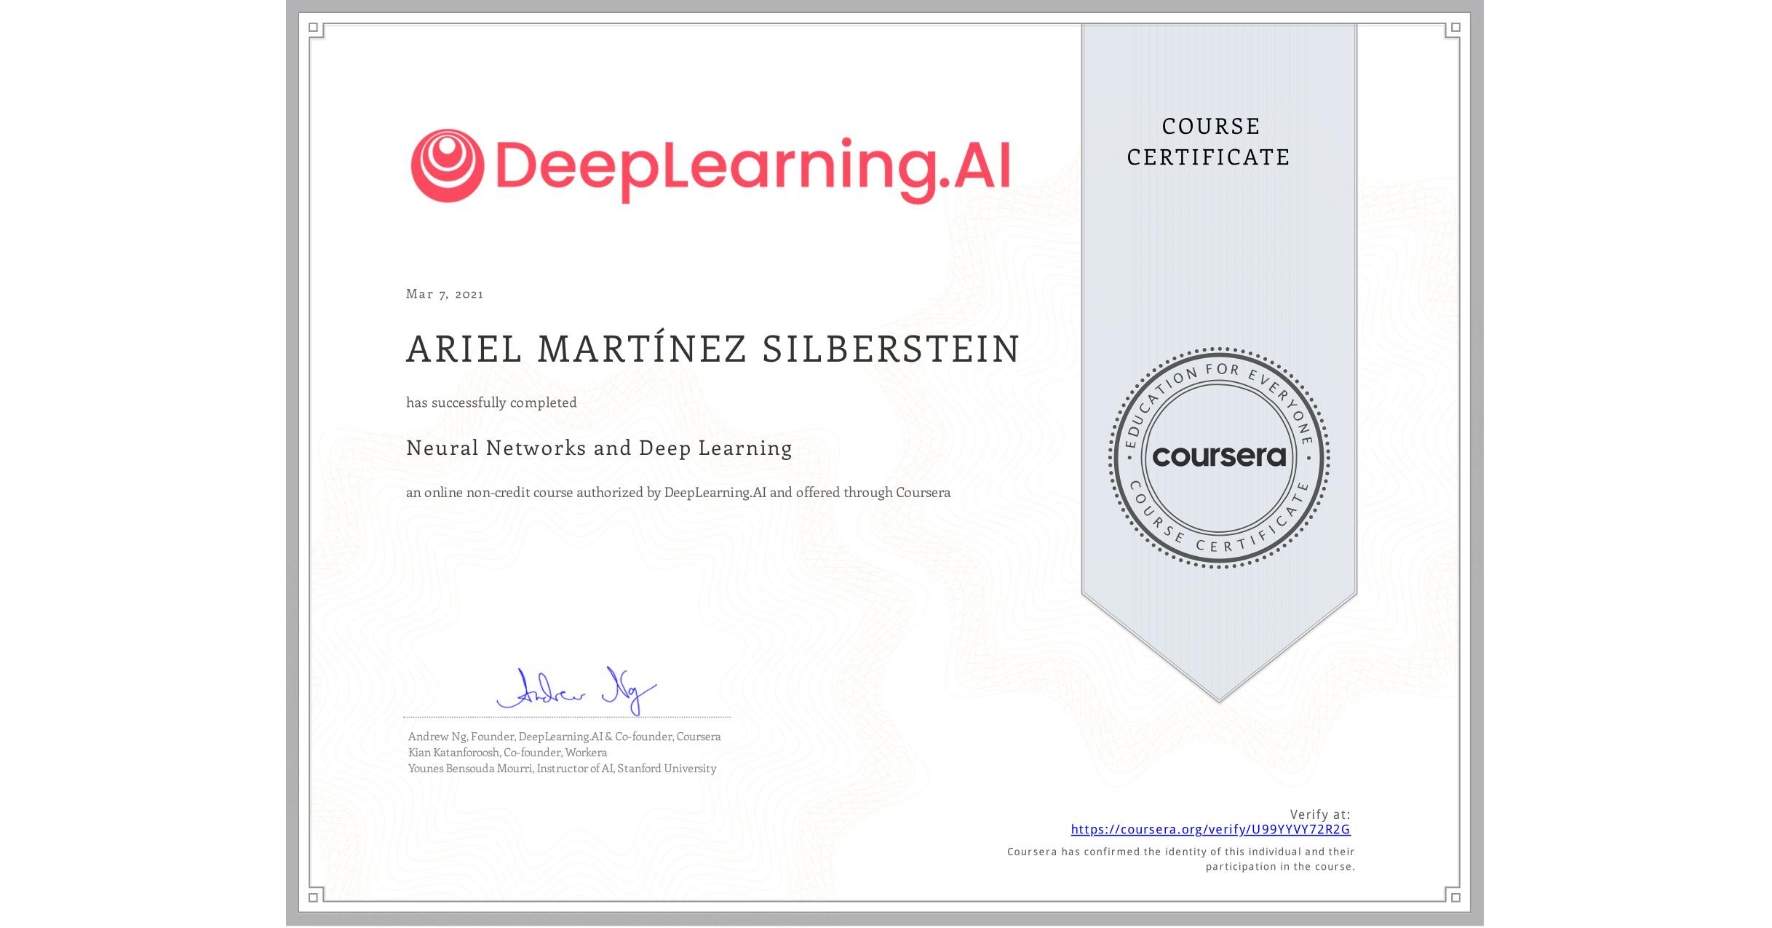 View certificate for ARIEL MARTÍNEZ SILBERSTEIN, Neural Networks and Deep Learning, an online non-credit course authorized by DeepLearning.AI and offered through Coursera